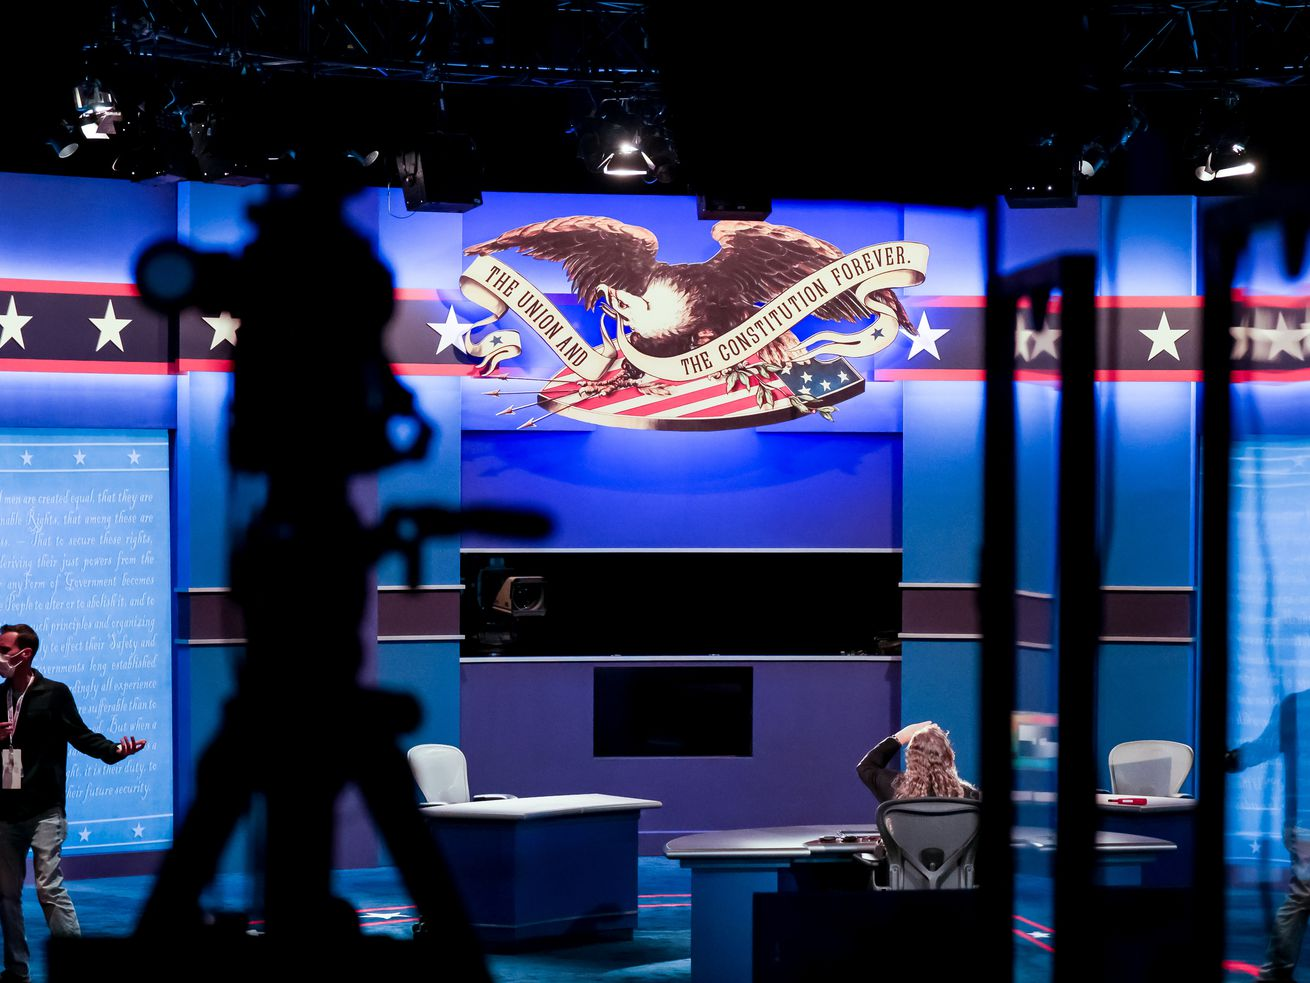 Crews put finishing touches on the stage at Kingsbury Hall at the University of Utah in Salt Lake City on Tuesday, Oct. 6, 2020, in preparation for Wednesday's vice presidential debate.